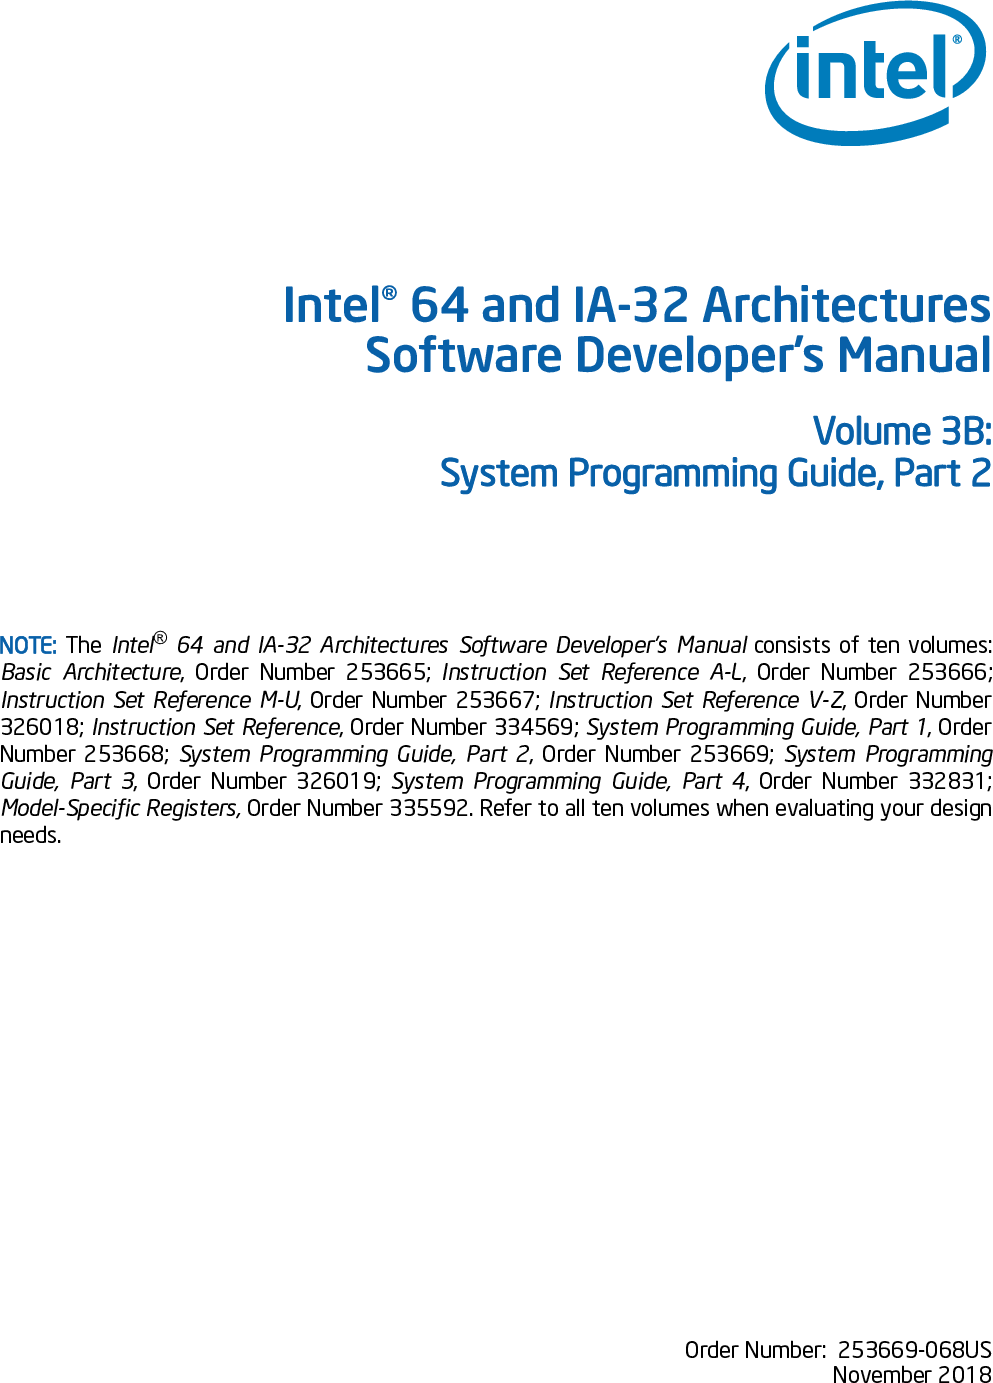 Intel® 64 And IA 32 Architectures Software Developer's